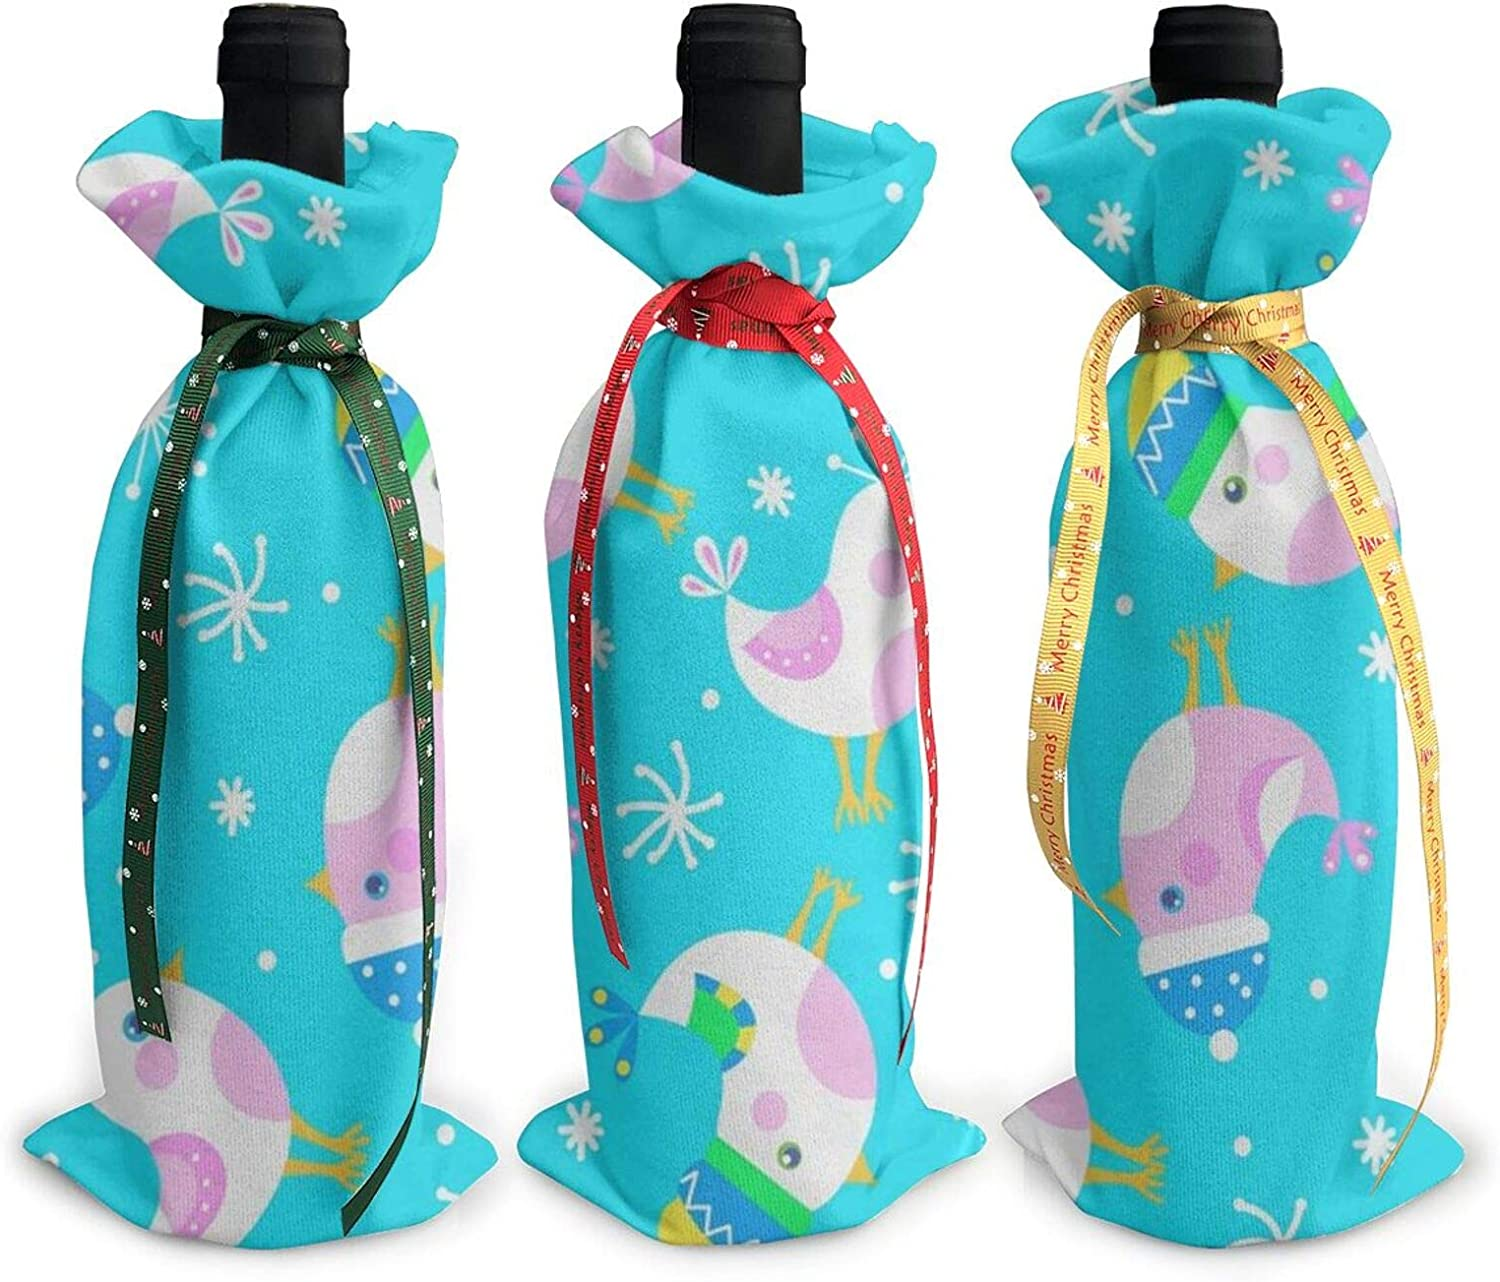 Wine Bag Decor Cute Birds Fall In Love Teal Blue Wine Bottle Cover, Wine Party Supplies Decorations, Unique Decorative Wine Bottles Sleeve, Kitchen Decor, Wine Gifts For Women Set 3